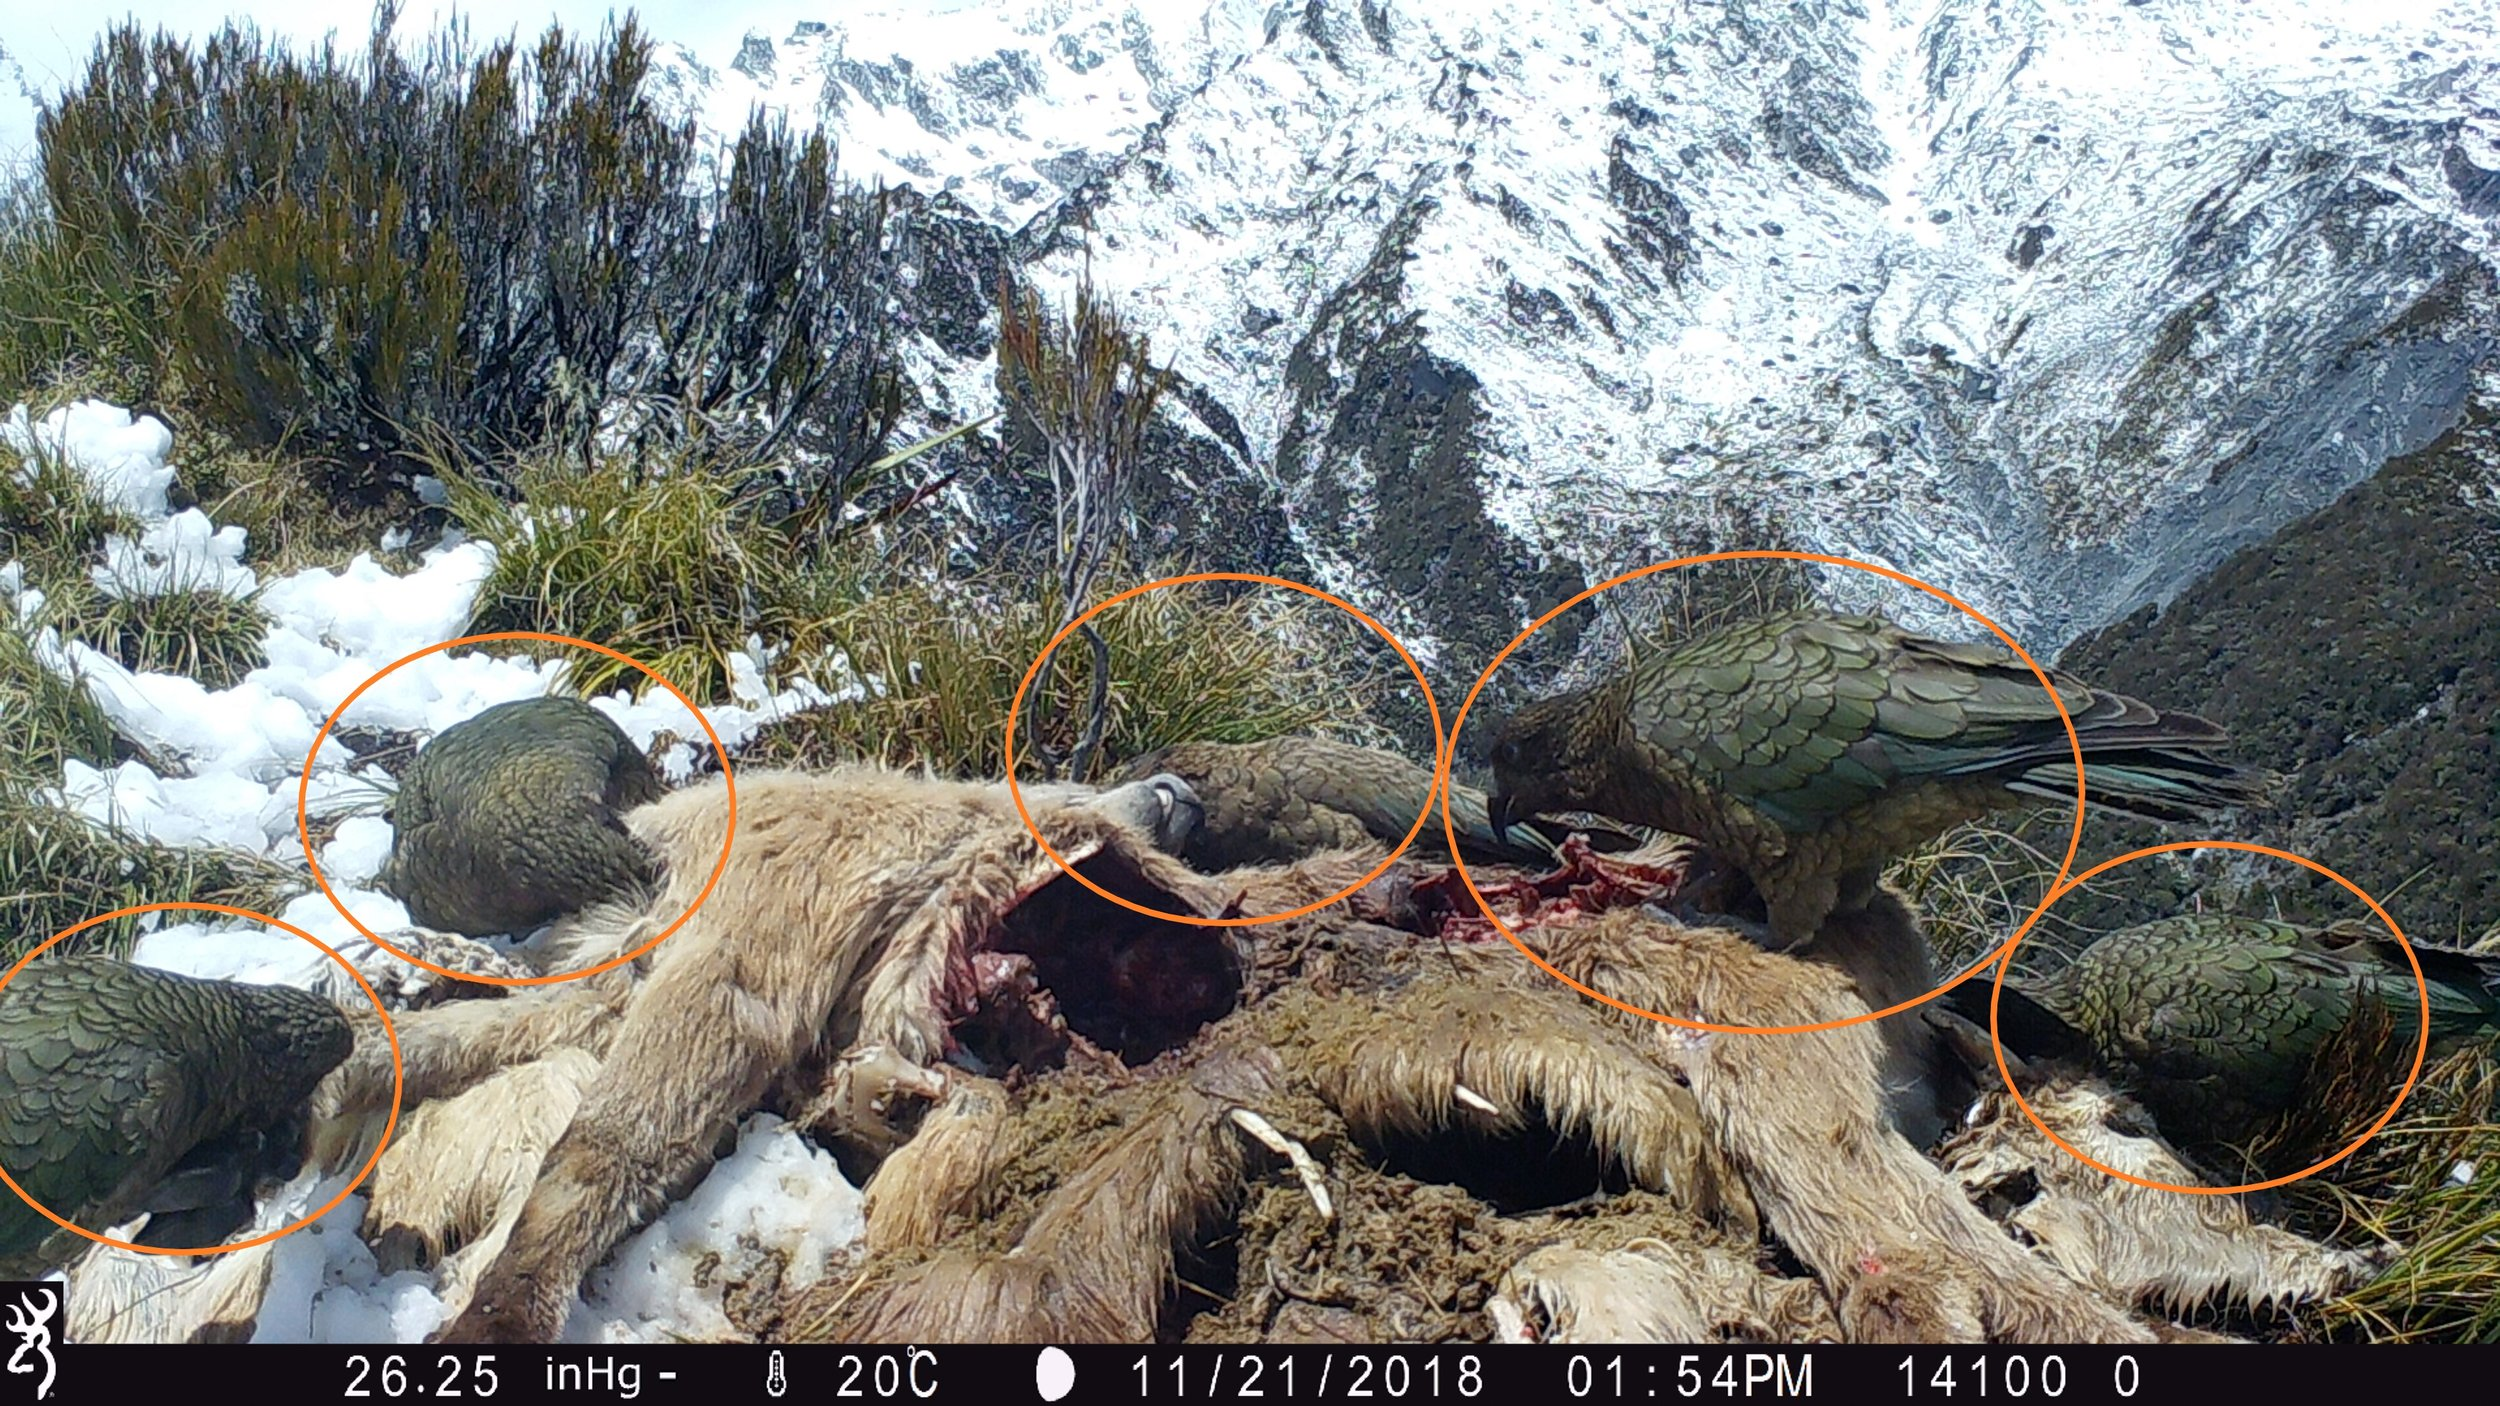 Figure 3. Five kea consuming a tahr carcass during Phase 2 (November-December 2018).